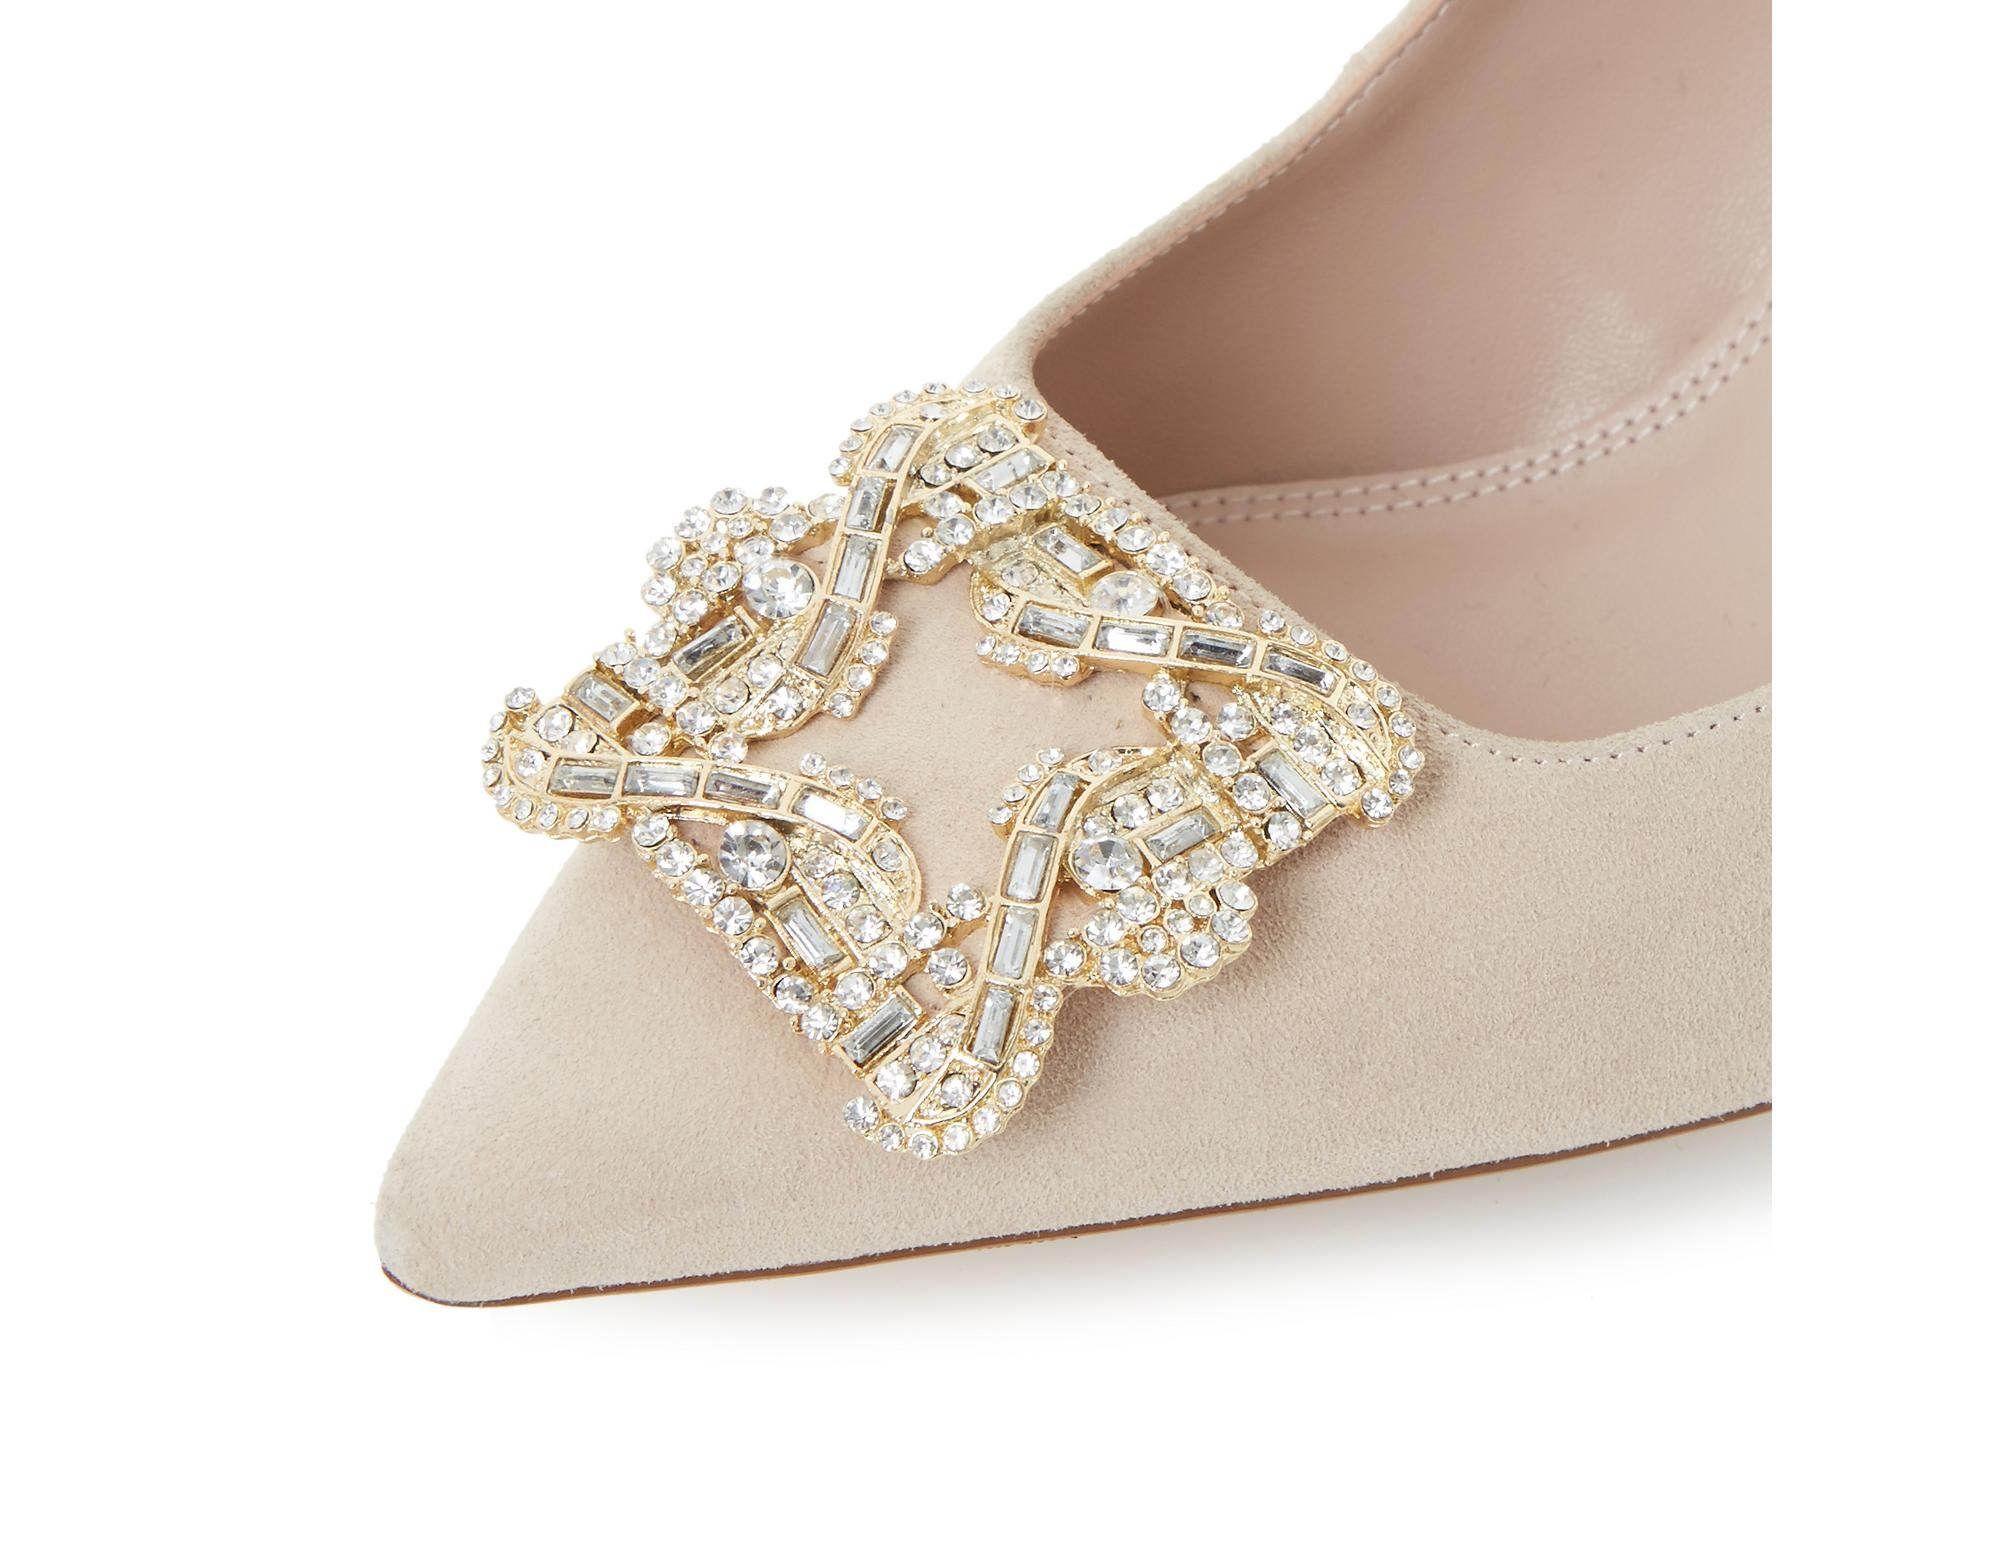 f107aa66f17 Be the belle of the ball in this stunning jewelled brooch court shoe.  Styled with